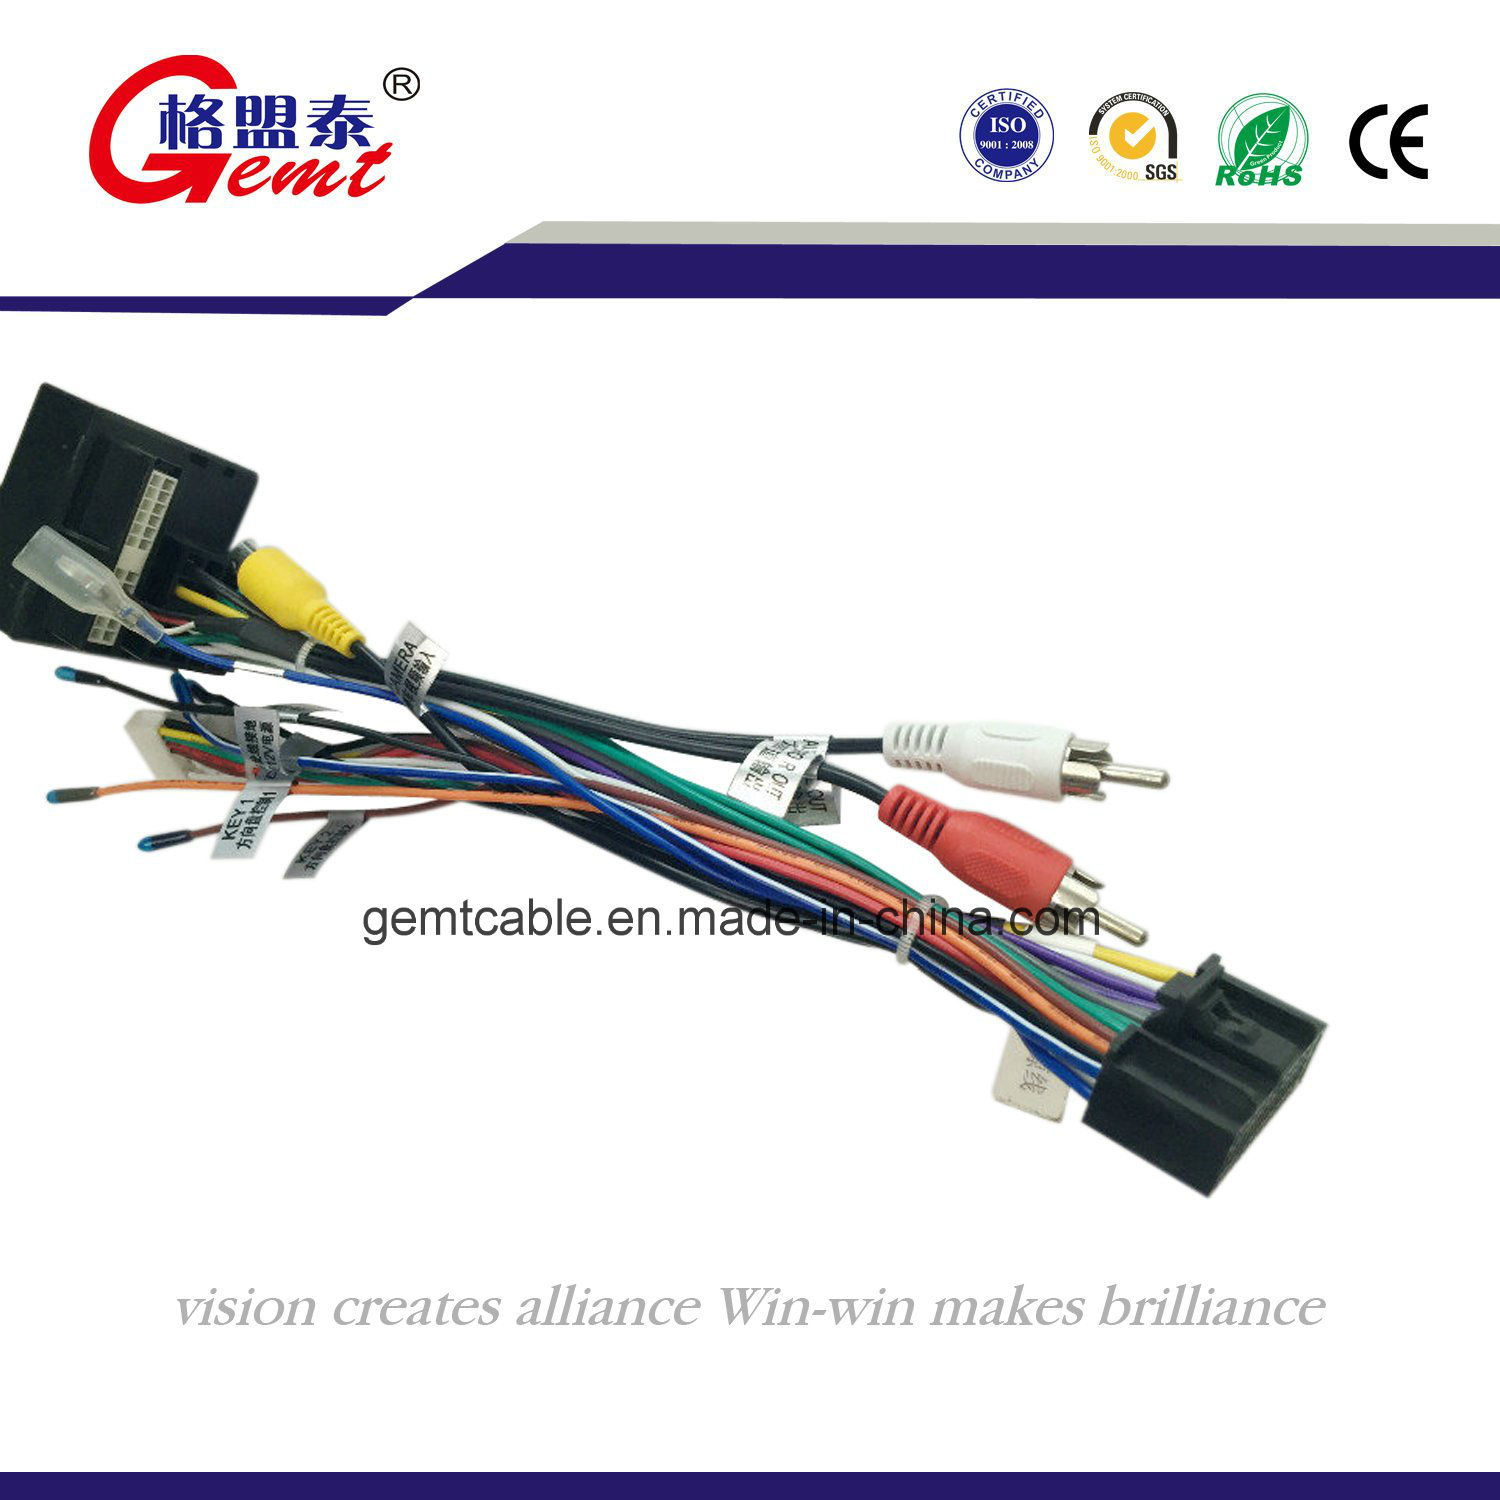 hight resolution of china wiring harness psa peugeot citroen extension cord china auto cable harness battery harness